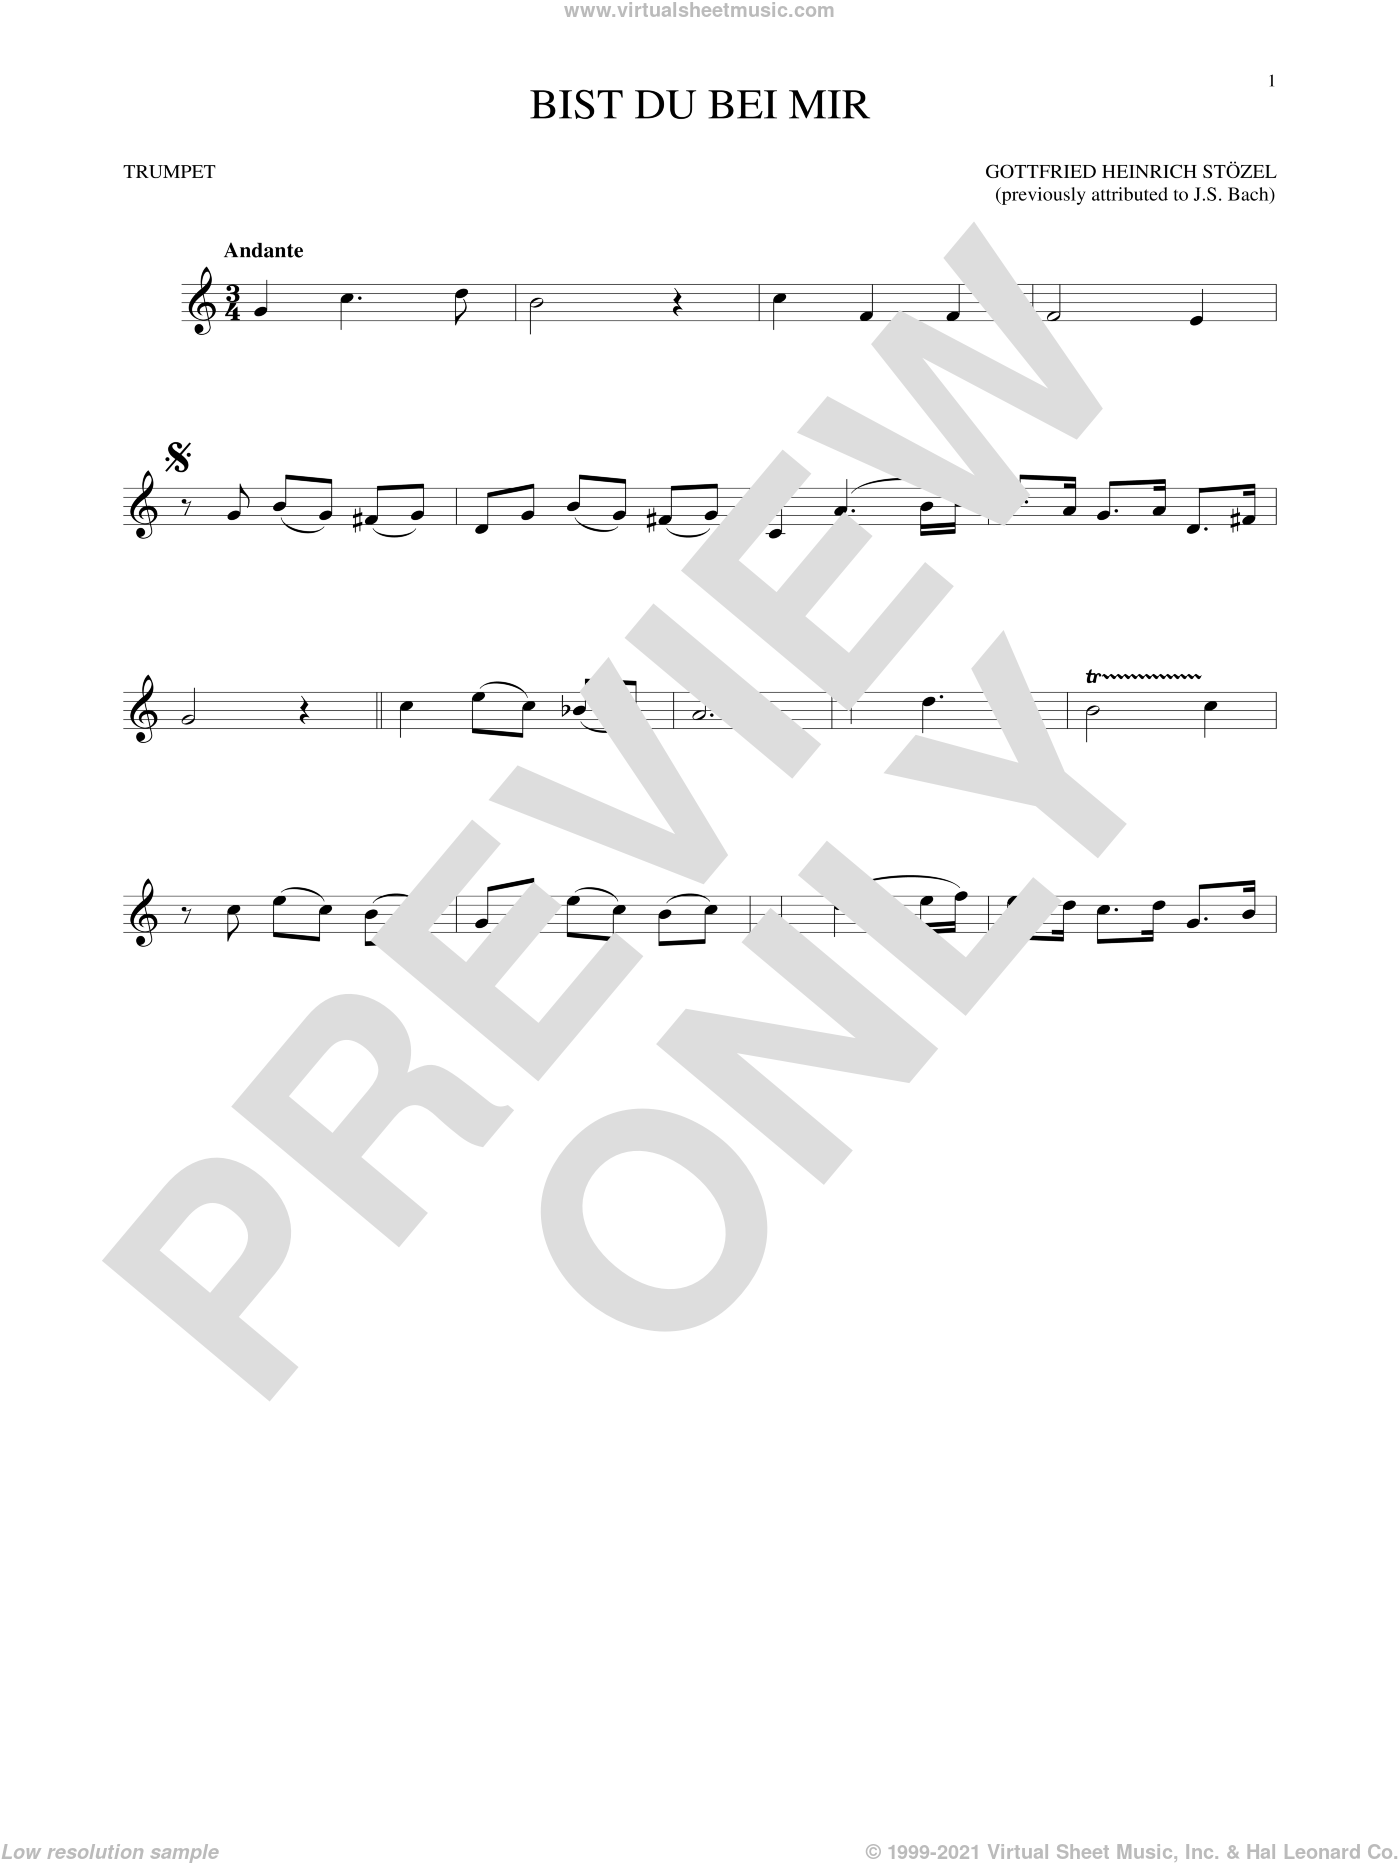 Bist du bei mir (You Are With Me) sheet music for trumpet solo by Johann Sebastian Bach, classical score, intermediate